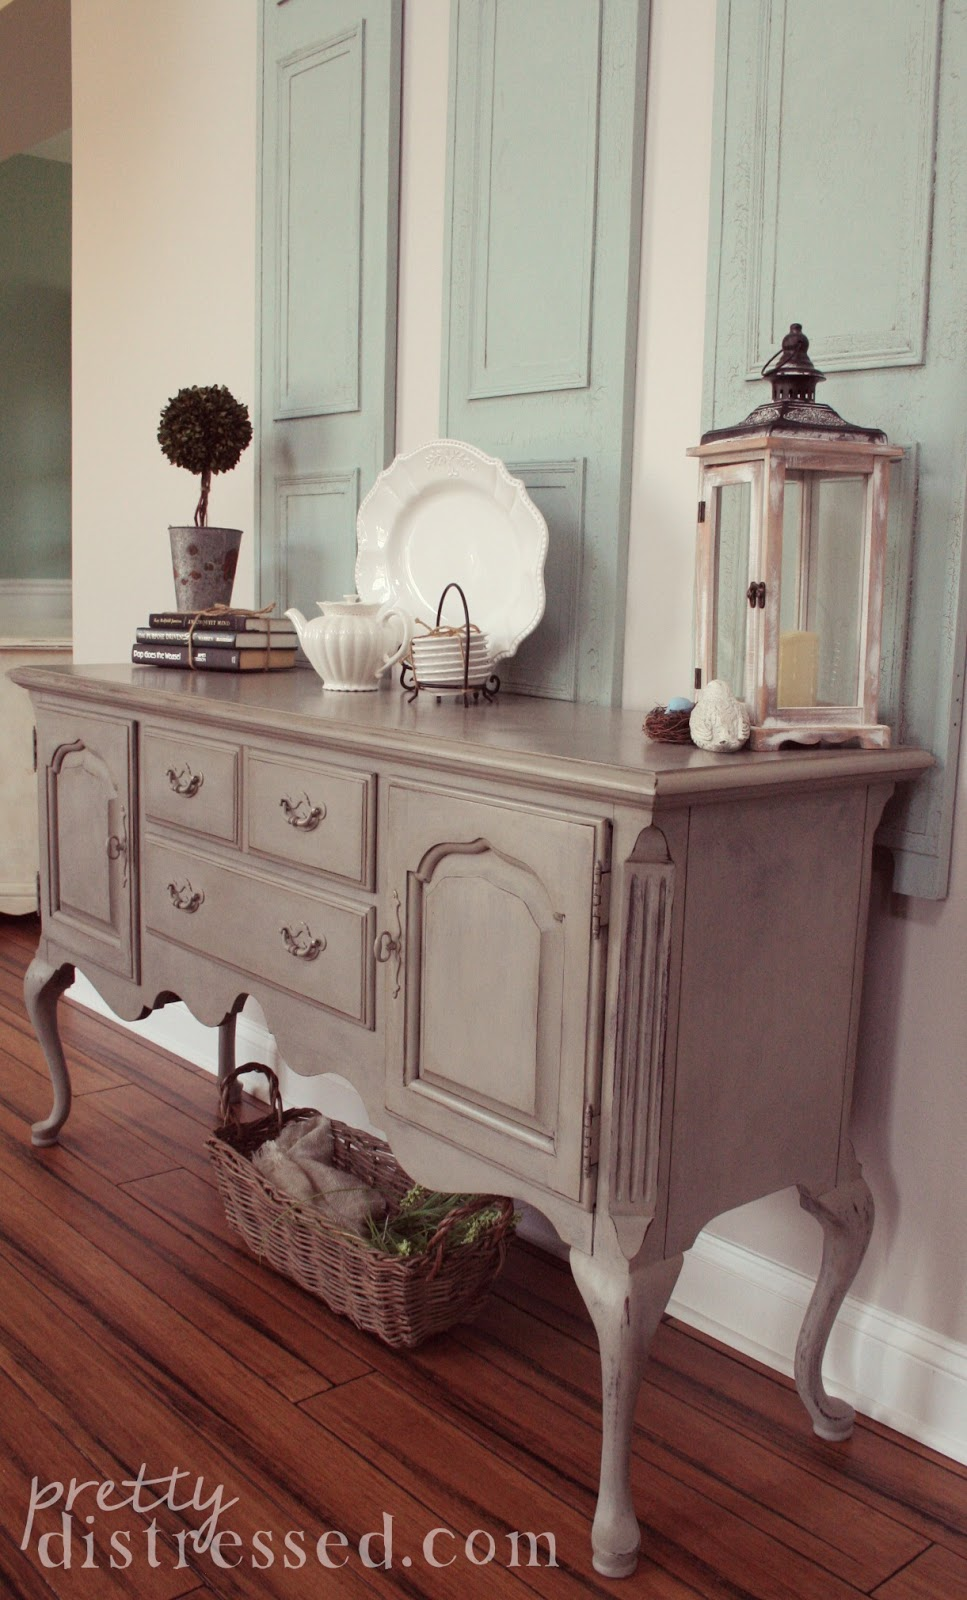 Pretty distressed off to market for Sideboard queens